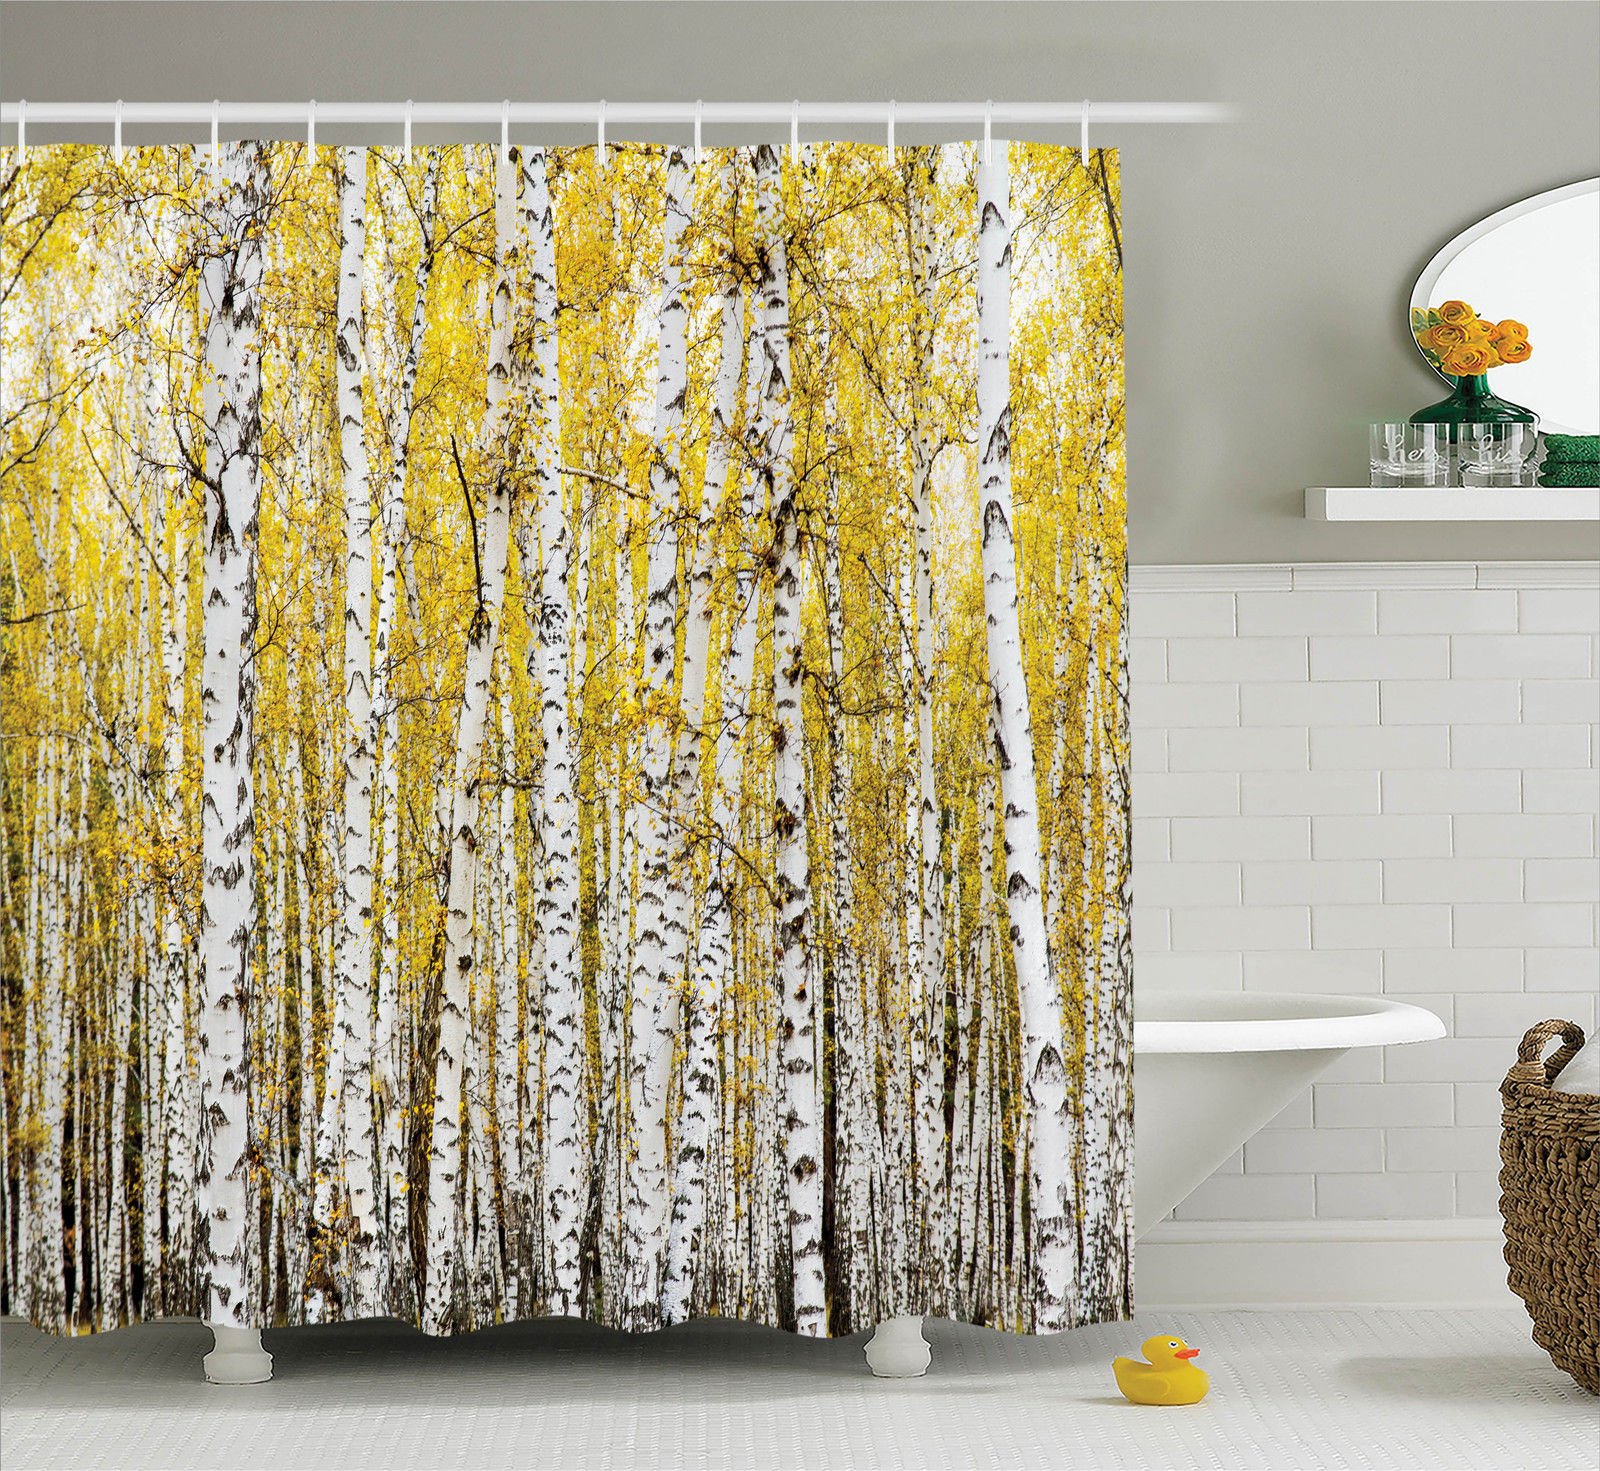 Farm House Decor Shower Curtain Set, Autumn Birch Forest Golden Leaves Woodland October Seasonal Nature Picture, Bathroom Accessories, 69W X 70L Inches, By Ambesonne